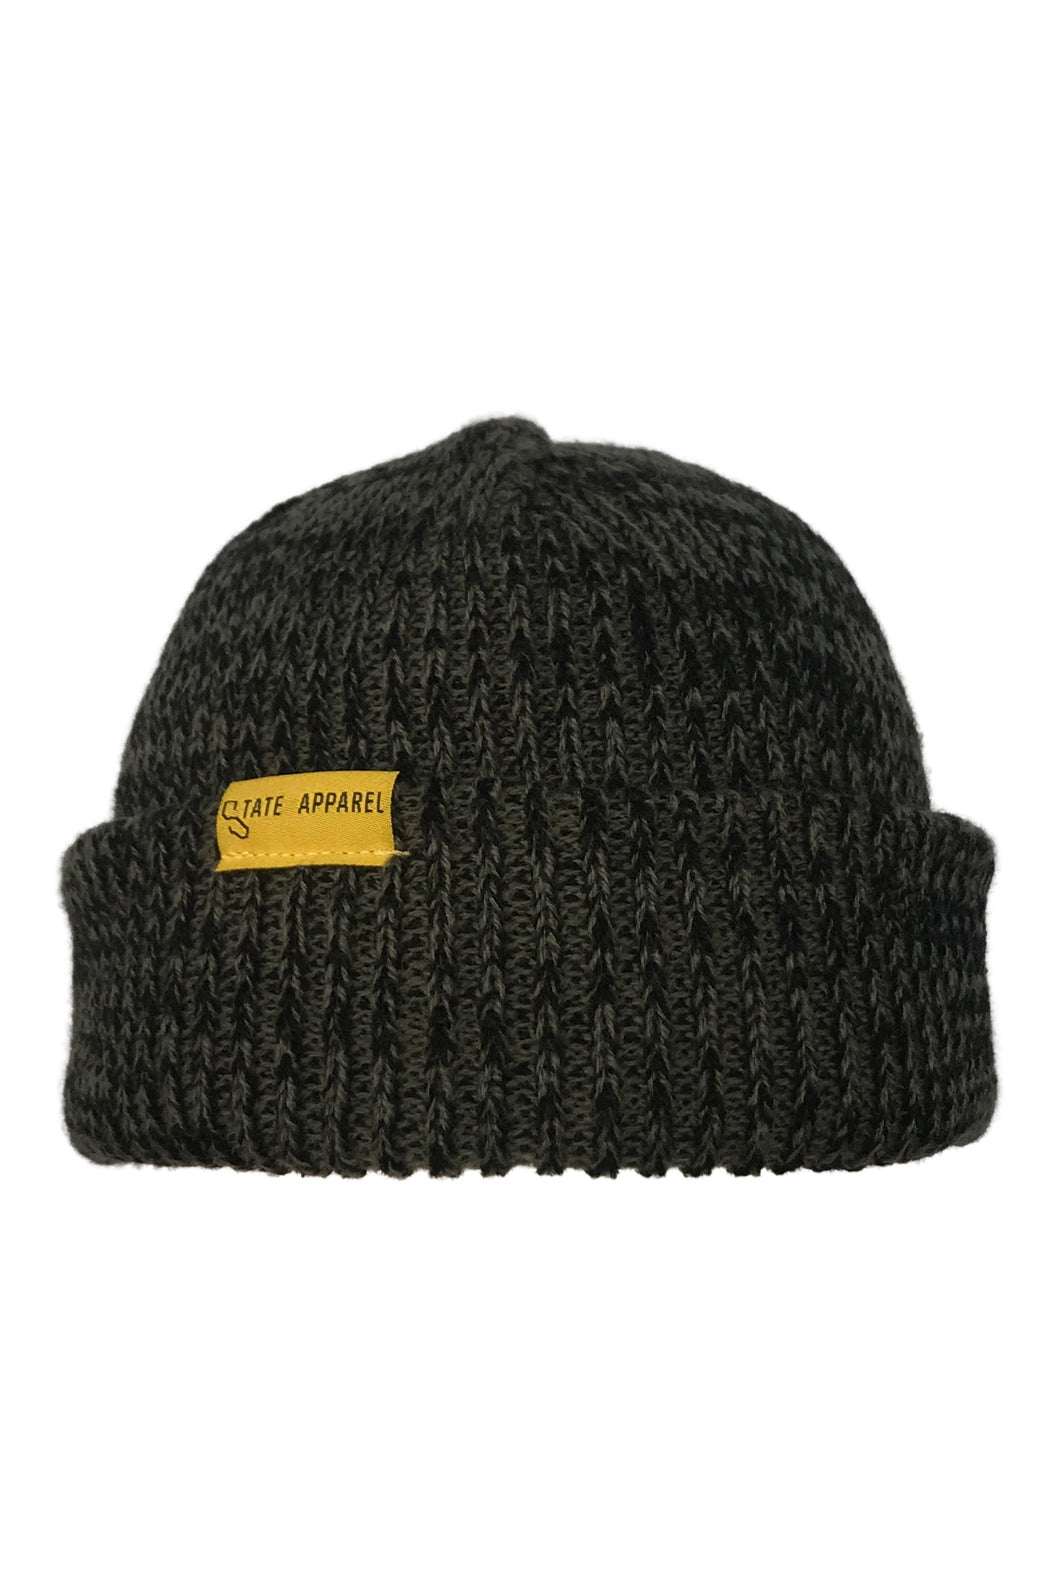 SHORE BEANIE - FOREST